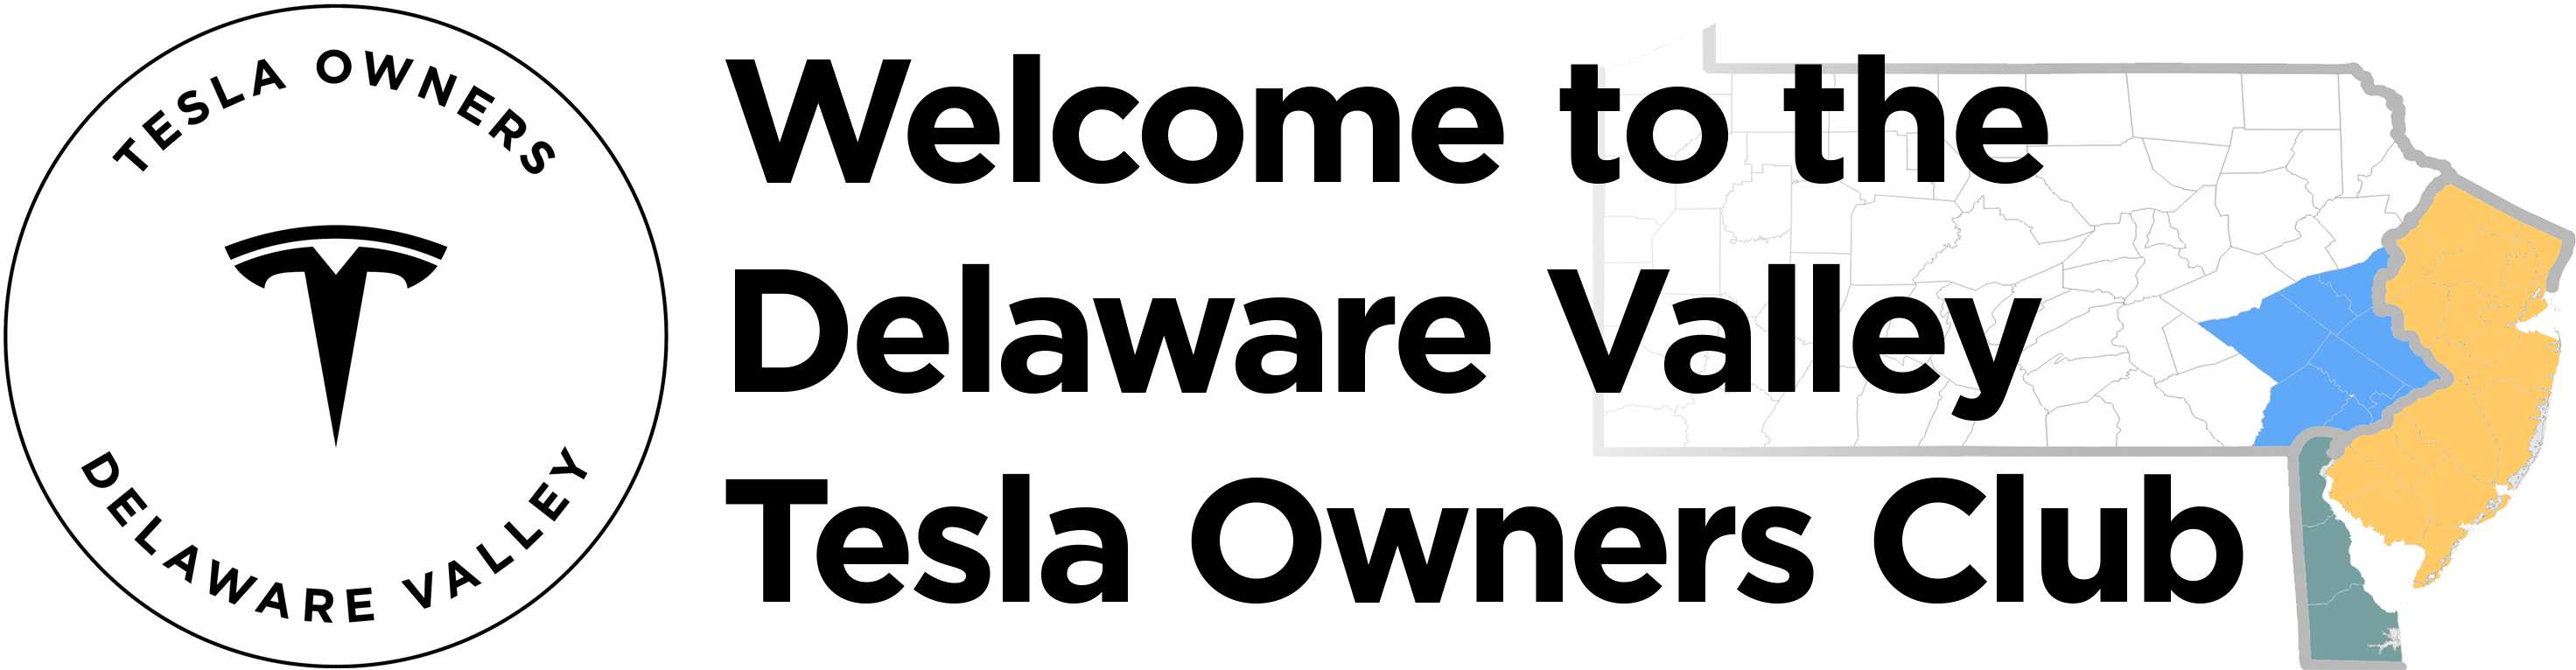 Welcome to the Delaware Valley Tesla Owners Club